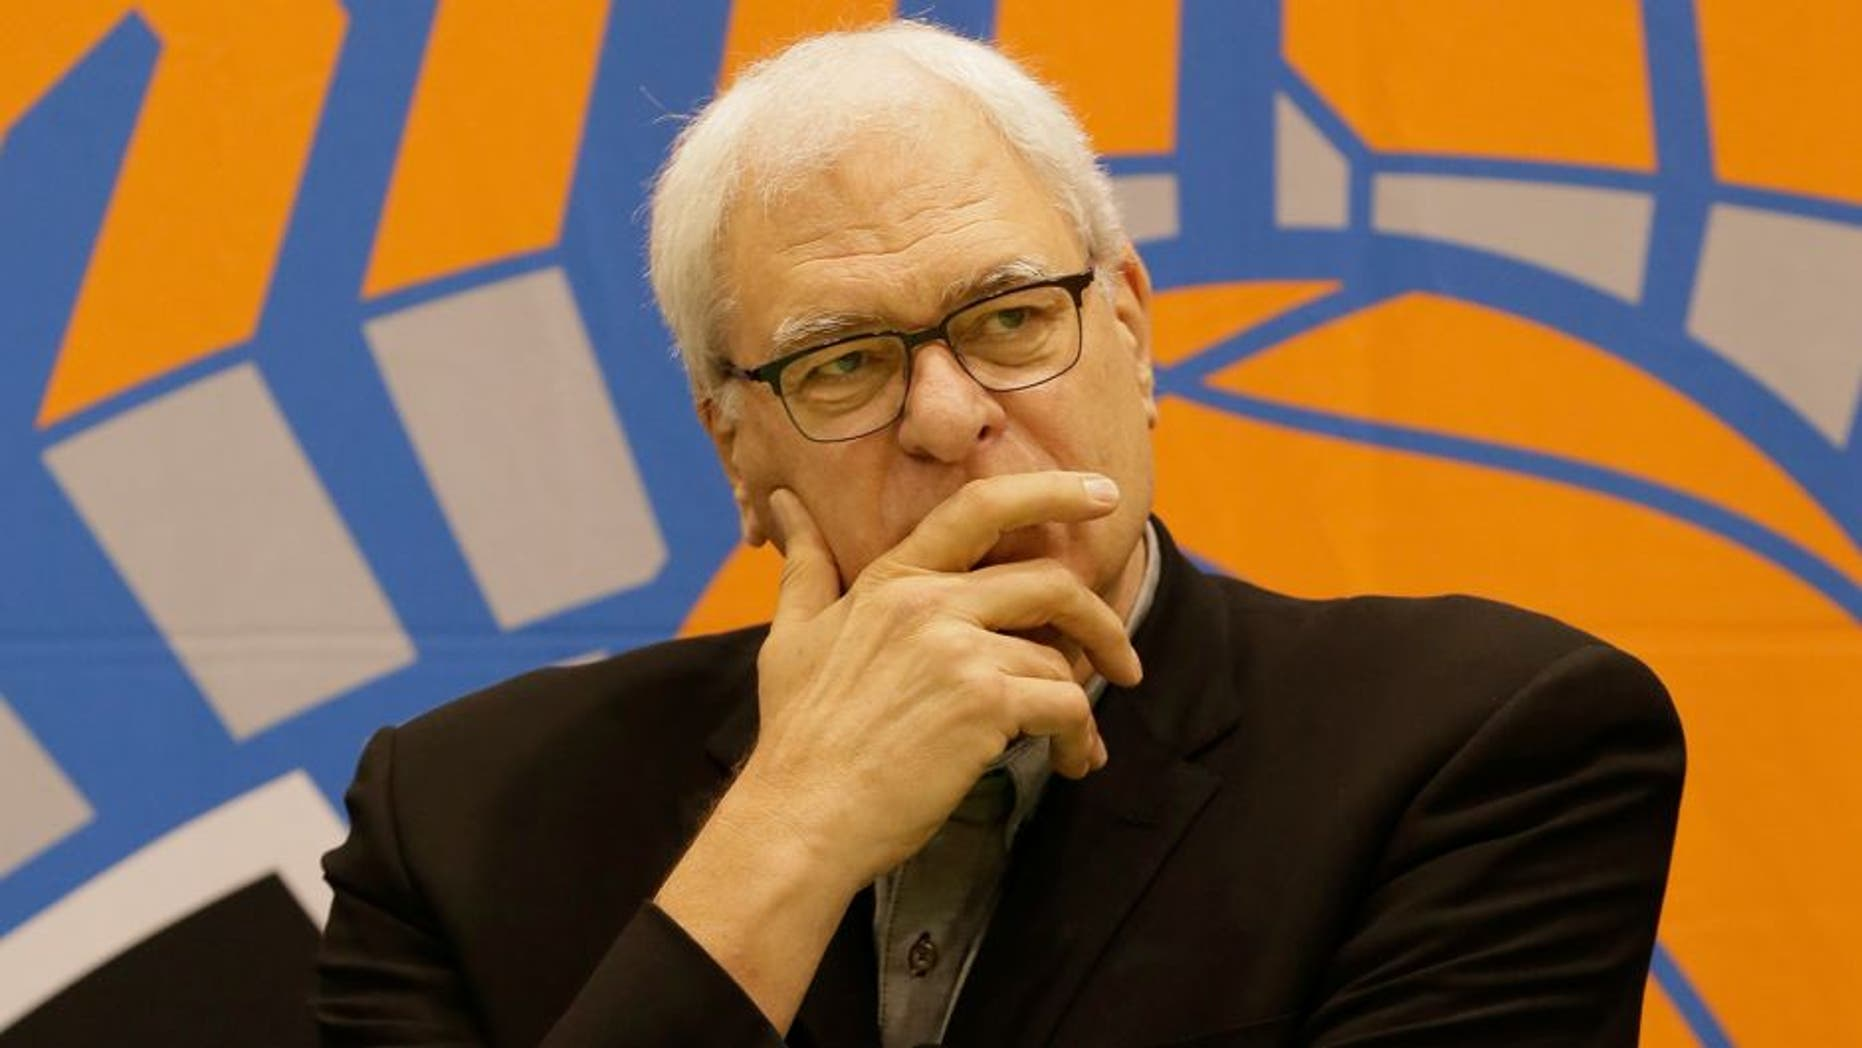 TARRYTOWN, NY - JUNE 26: New York Knicks President Phil Jackson speaks to the media at the Madison Square Garden Training Facility on June 26, 2015 in Tarrytown, New York. NOTE TO USER: User expressly acknowledges and agrees that, by downloading and or using this photograph, User is consenting to the terms and conditions of the Getty Images License Agreement. Mandatory Copyright Notice: Copyright 2015 NBAE (Photo by Steven Freeman/NBAE via Getty Images)